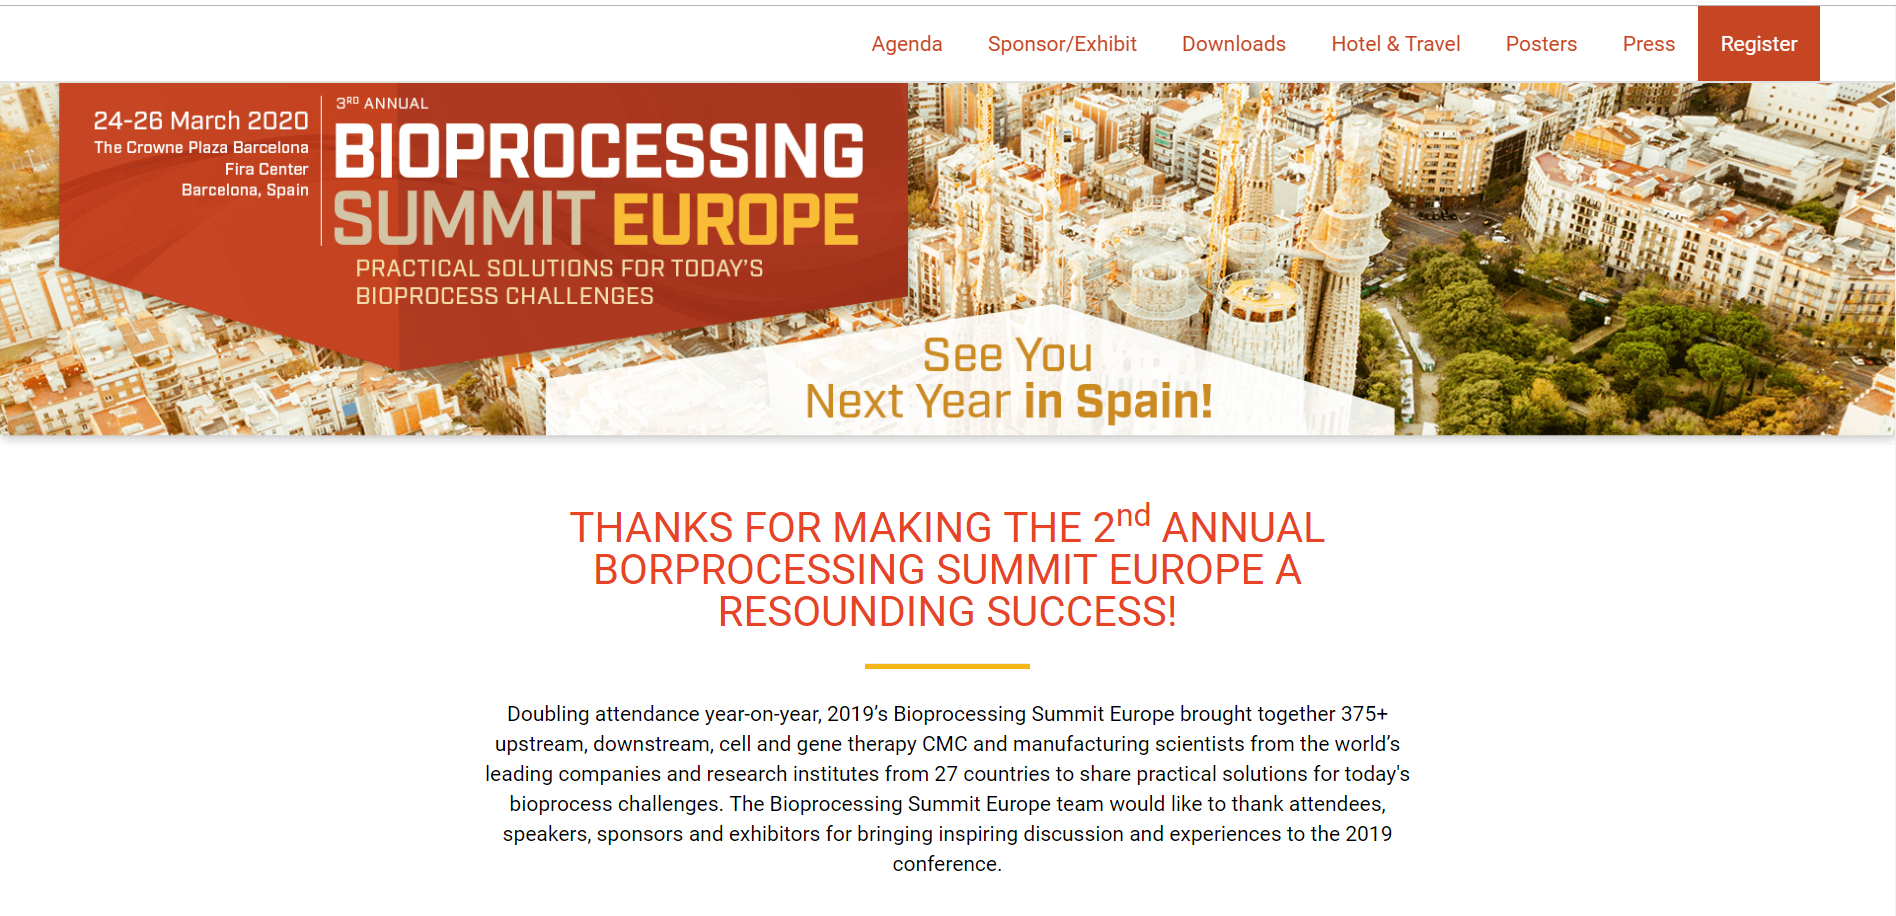 Third Annual Bioprocessing Summit Europe